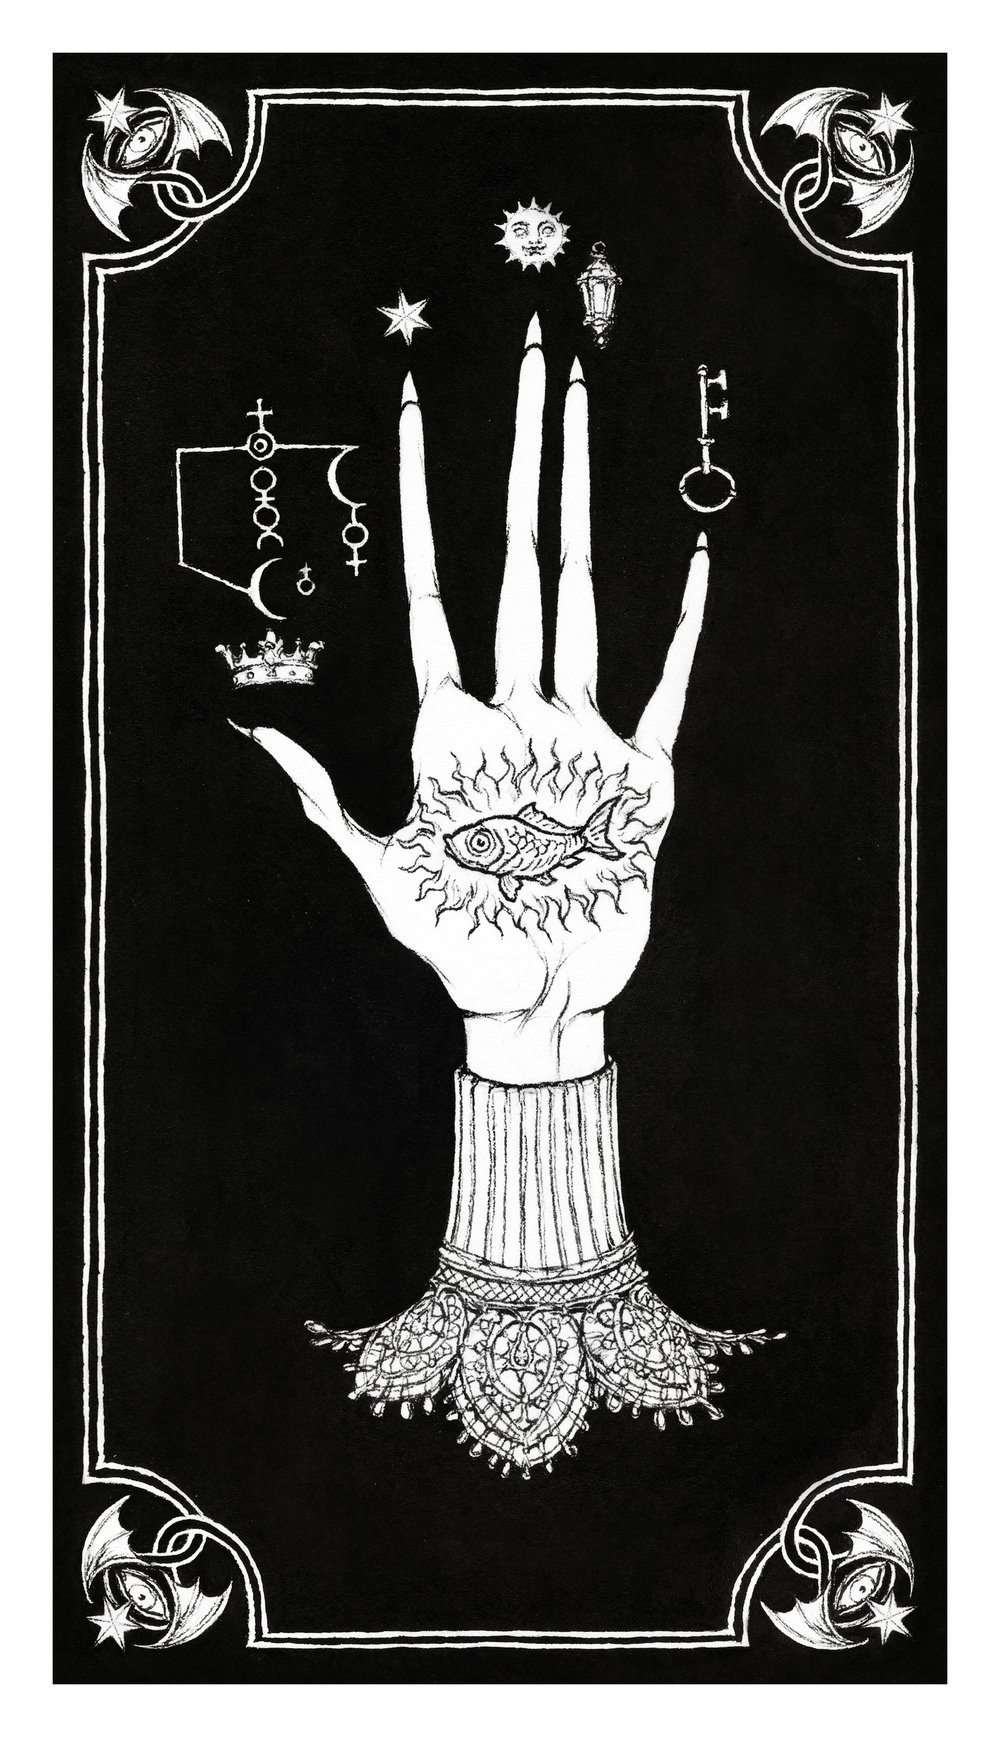 illustration_hand.jpg